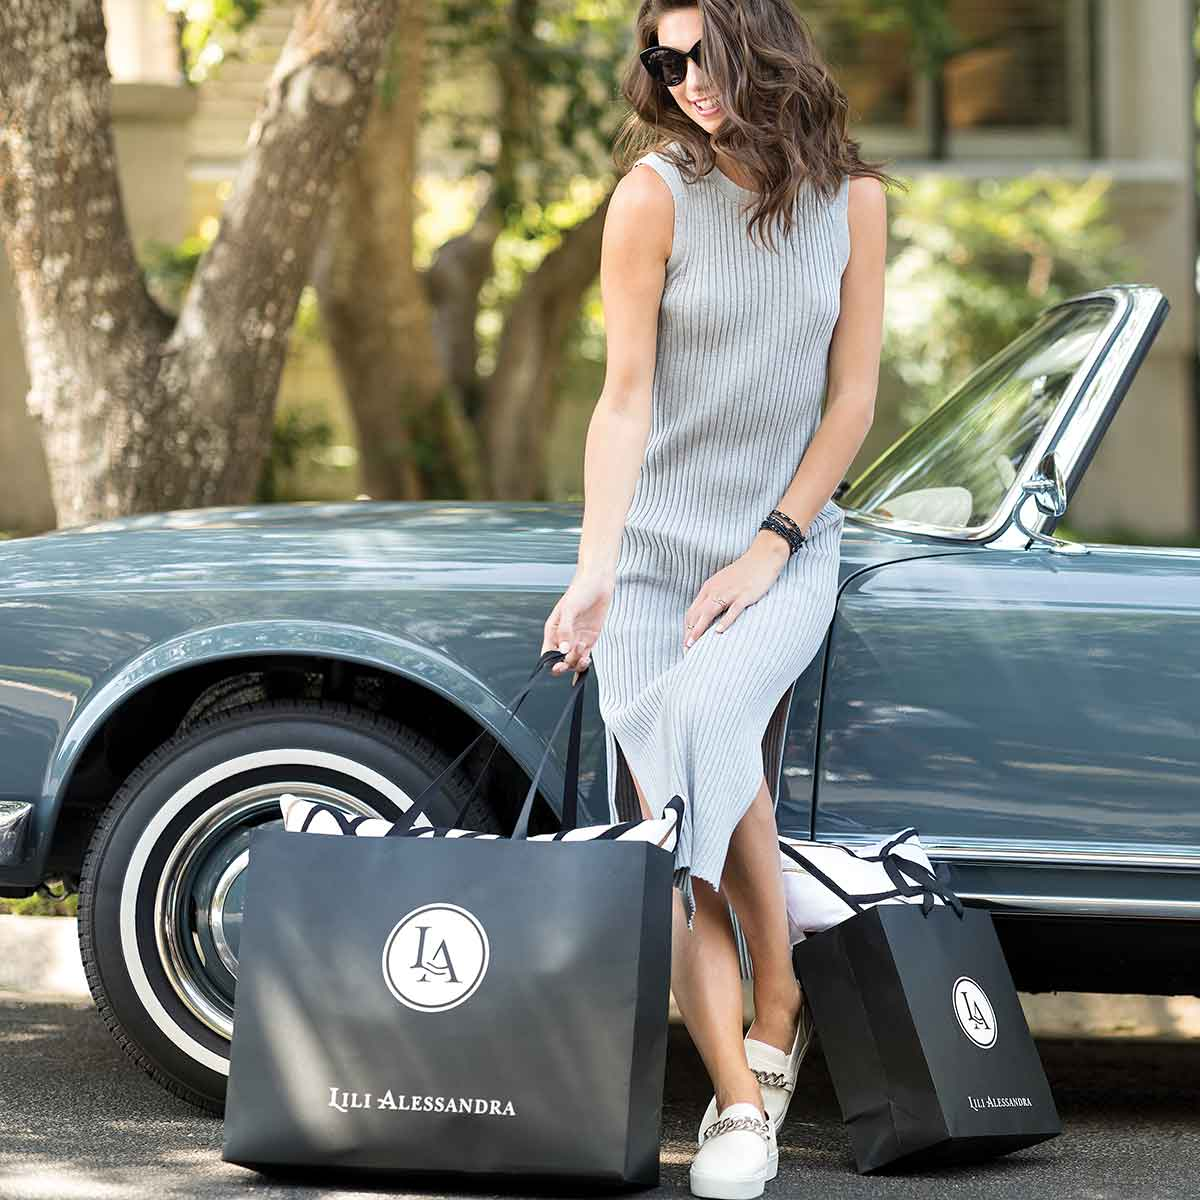 woman with Lili Alessandra bags